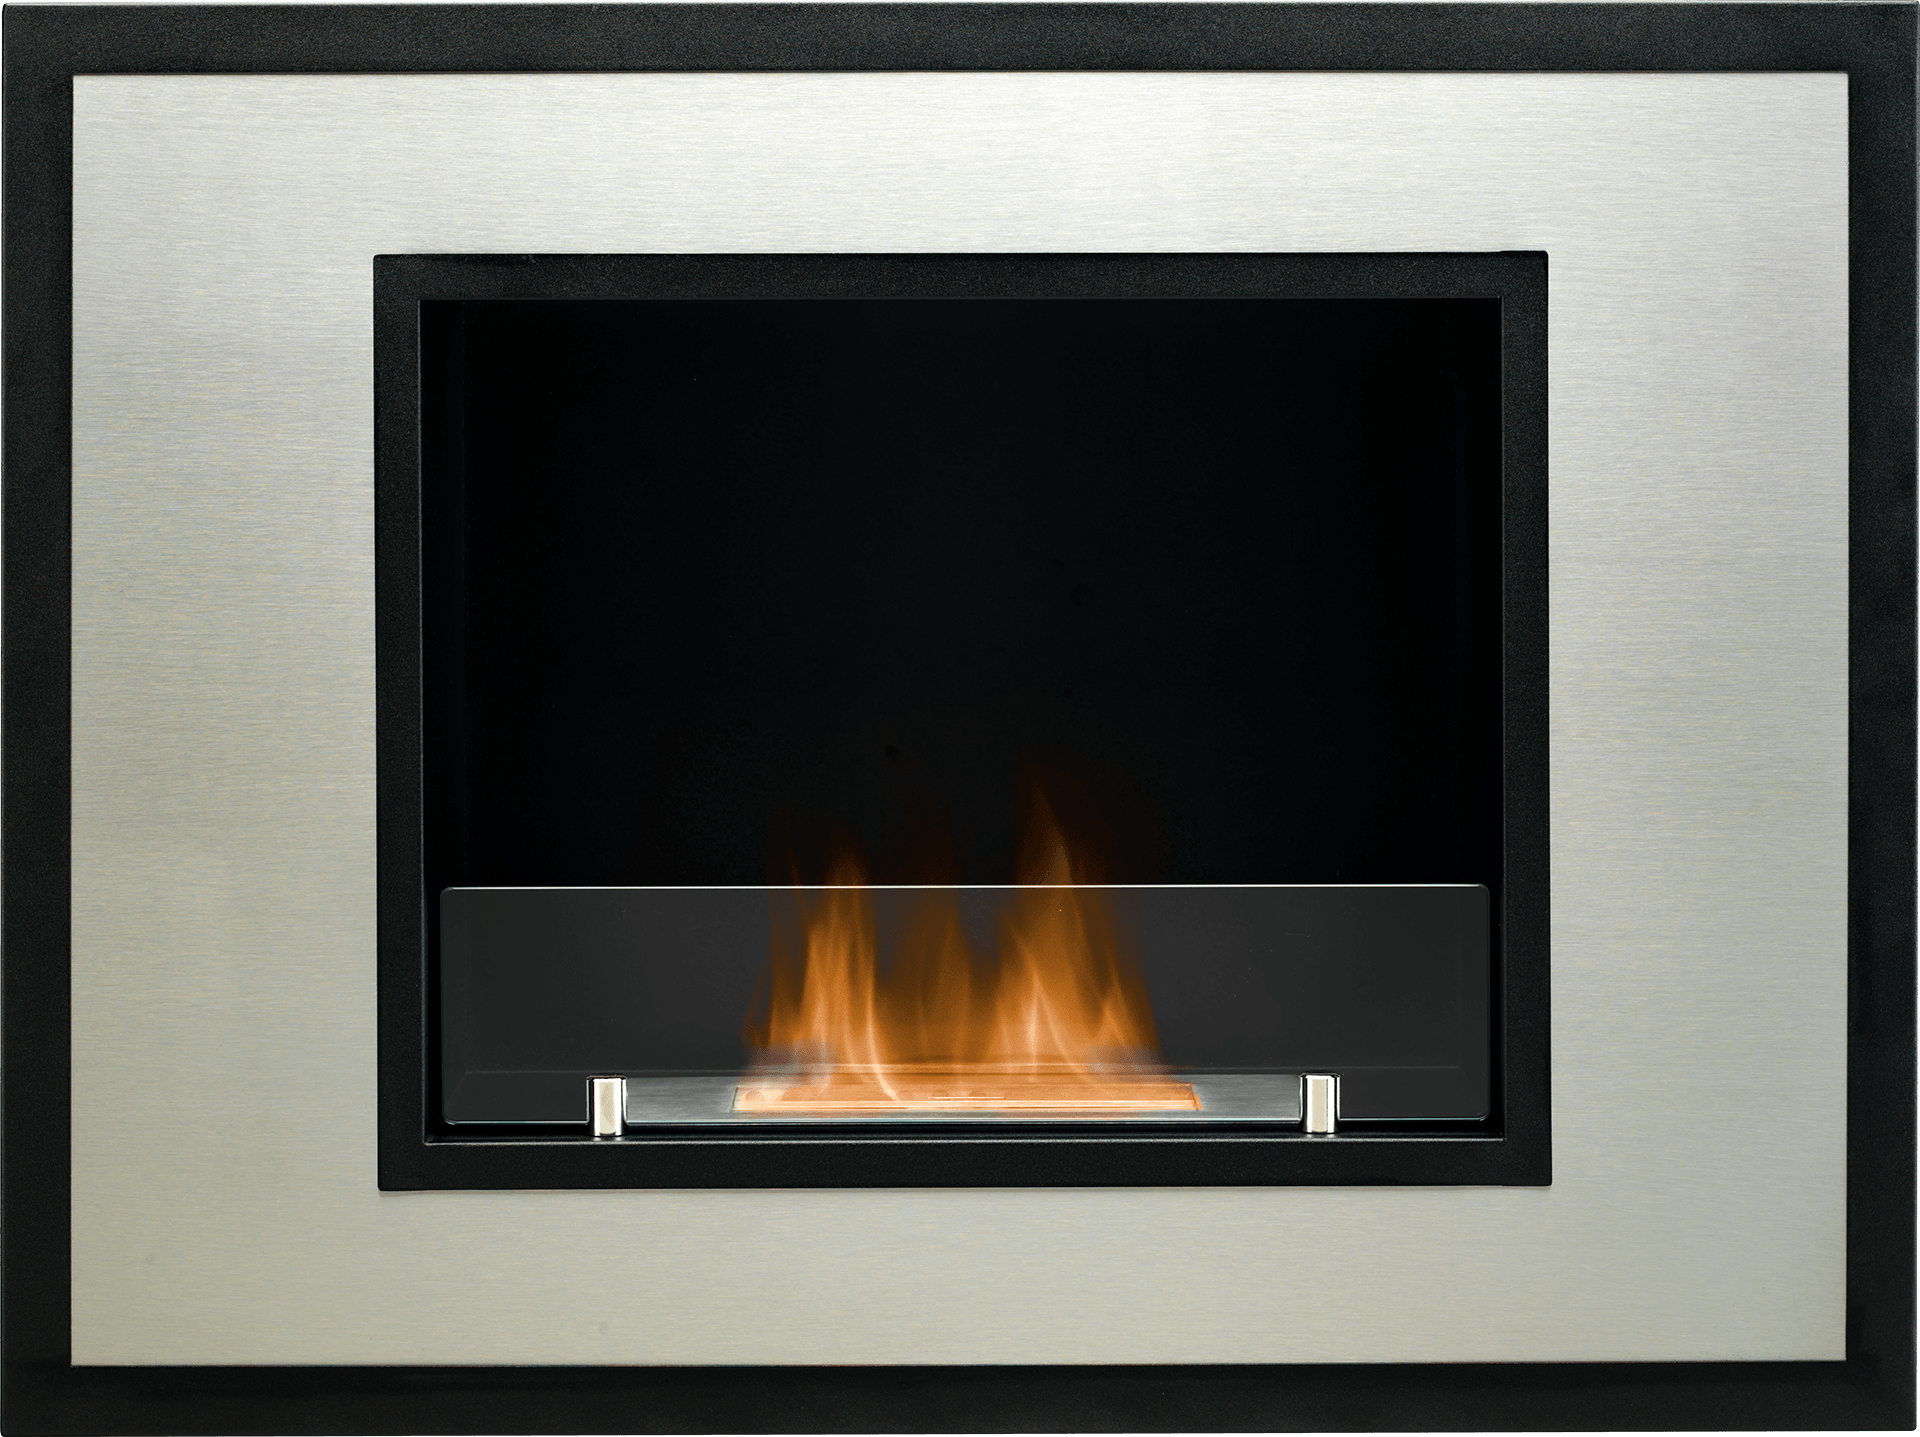 The Cuadro Wall Mounted Bio Ethanol Fire